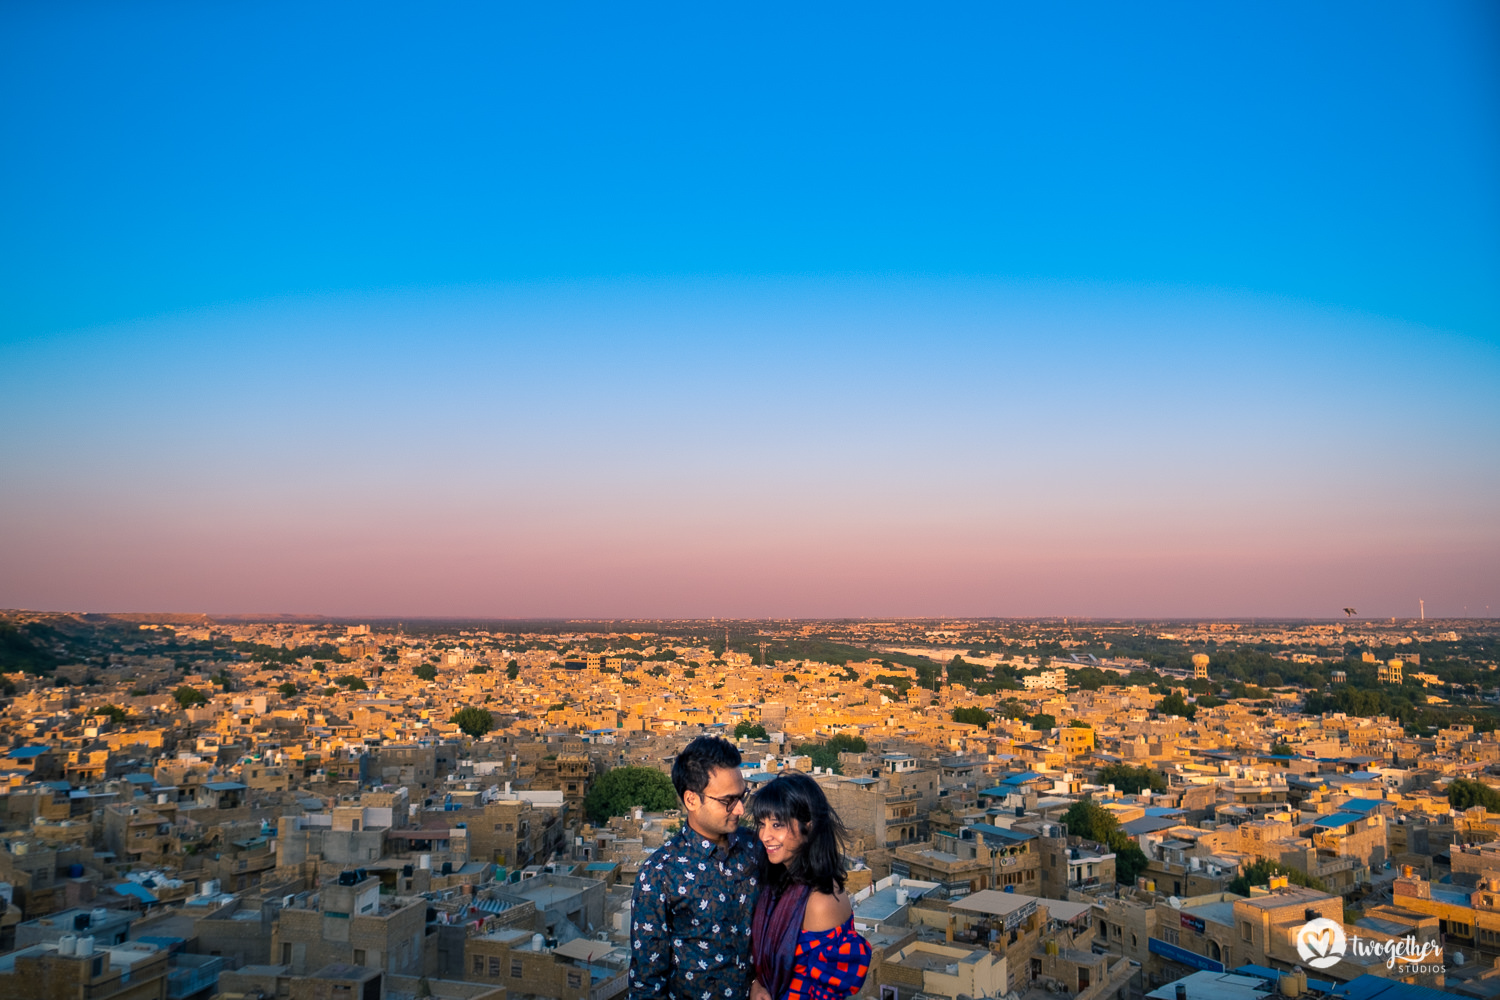 Pre-wedding couple shoot in Jaisalmer